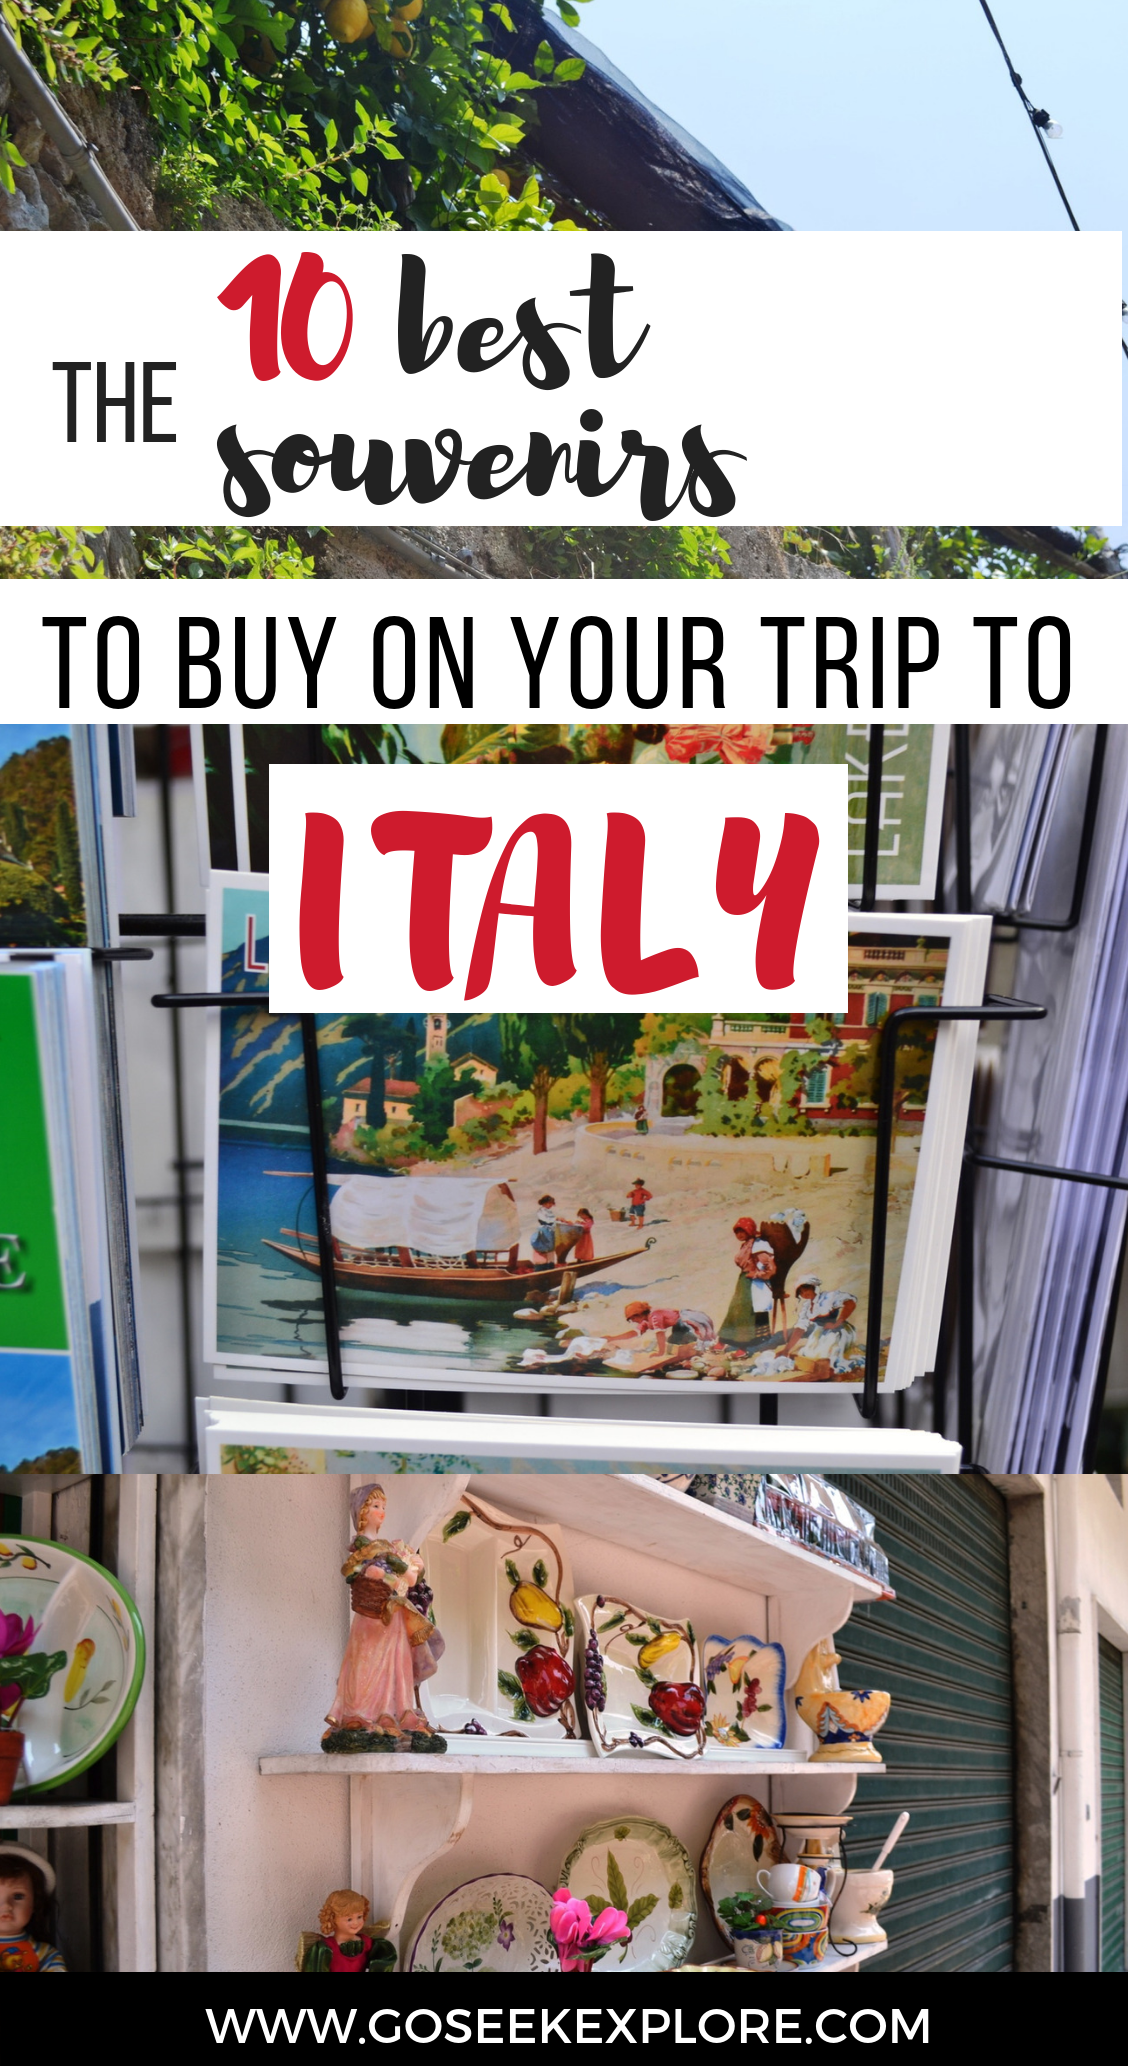 Memories and experiences are more important than things, though when you travel it can be fun to shop around and see what the local specialties are. If you're looking for what souvenirs to buy in Italy, here's what you should get - these are much better than your average refrigerator magnet or key chain. / 10-best-souvenirs-italy